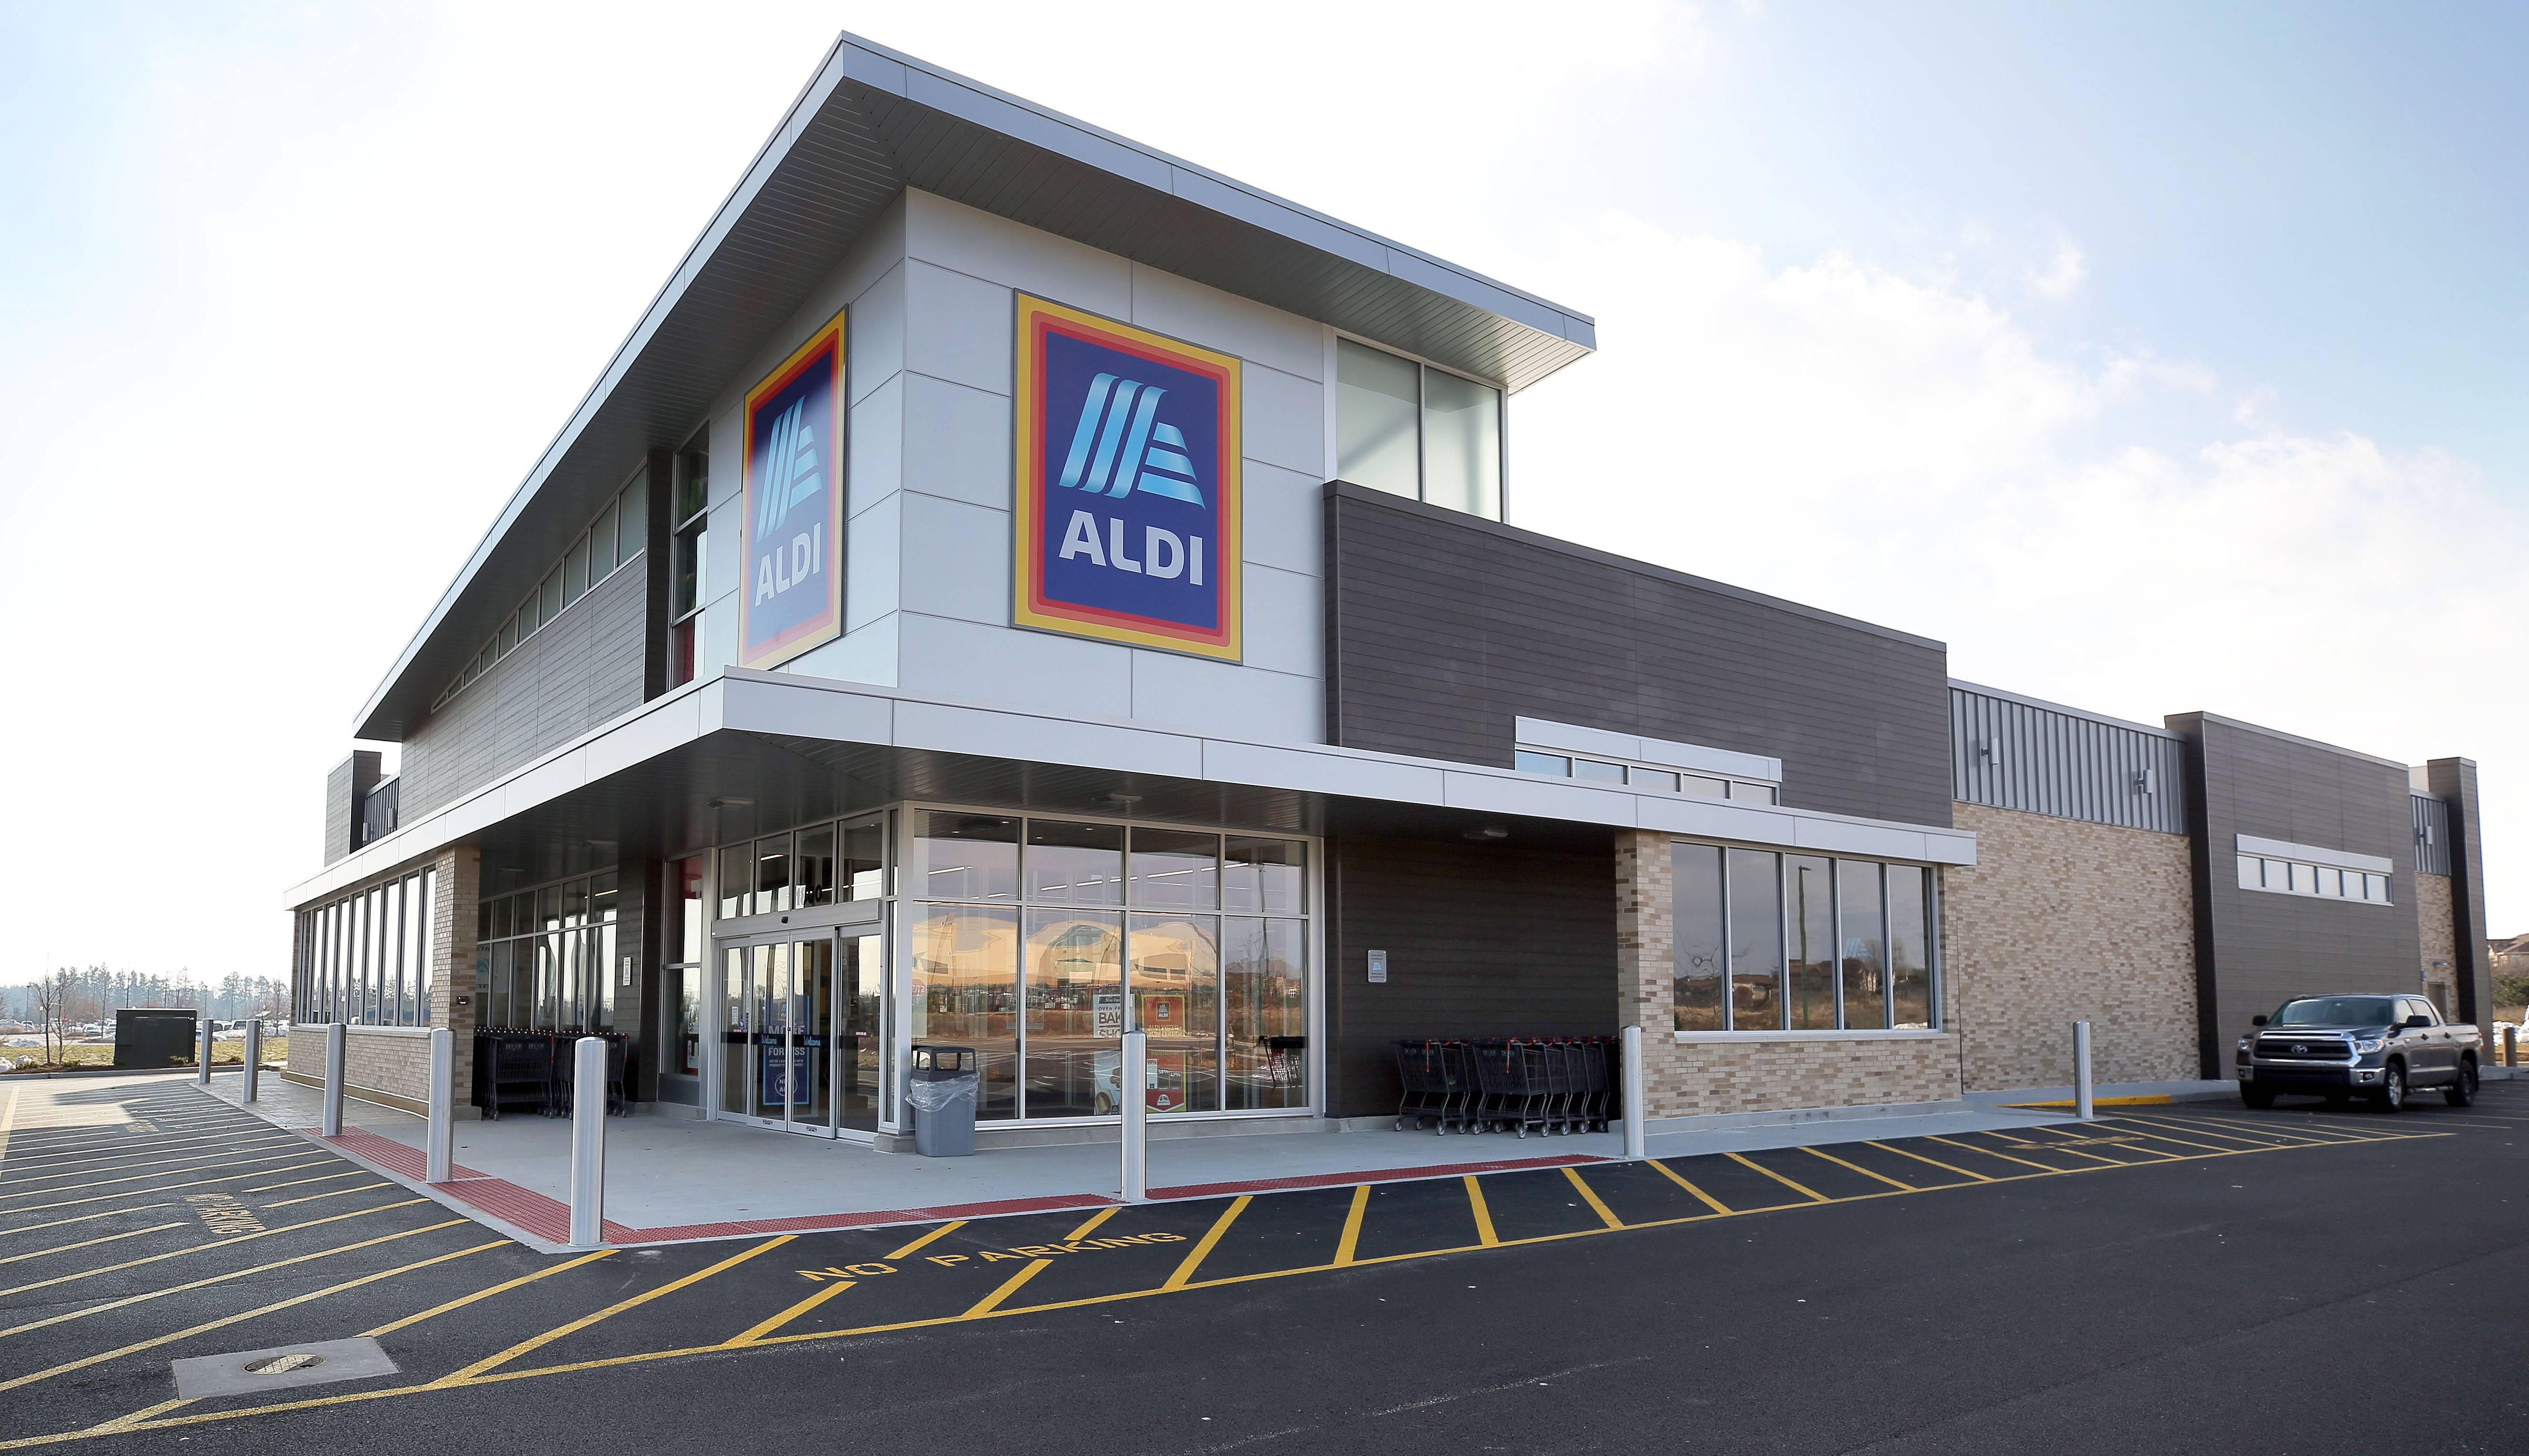 Aldi is hosting a grand opening Thursday in Vernon Hills. The new store is part of the company's $3.4 billion national expansion plan.